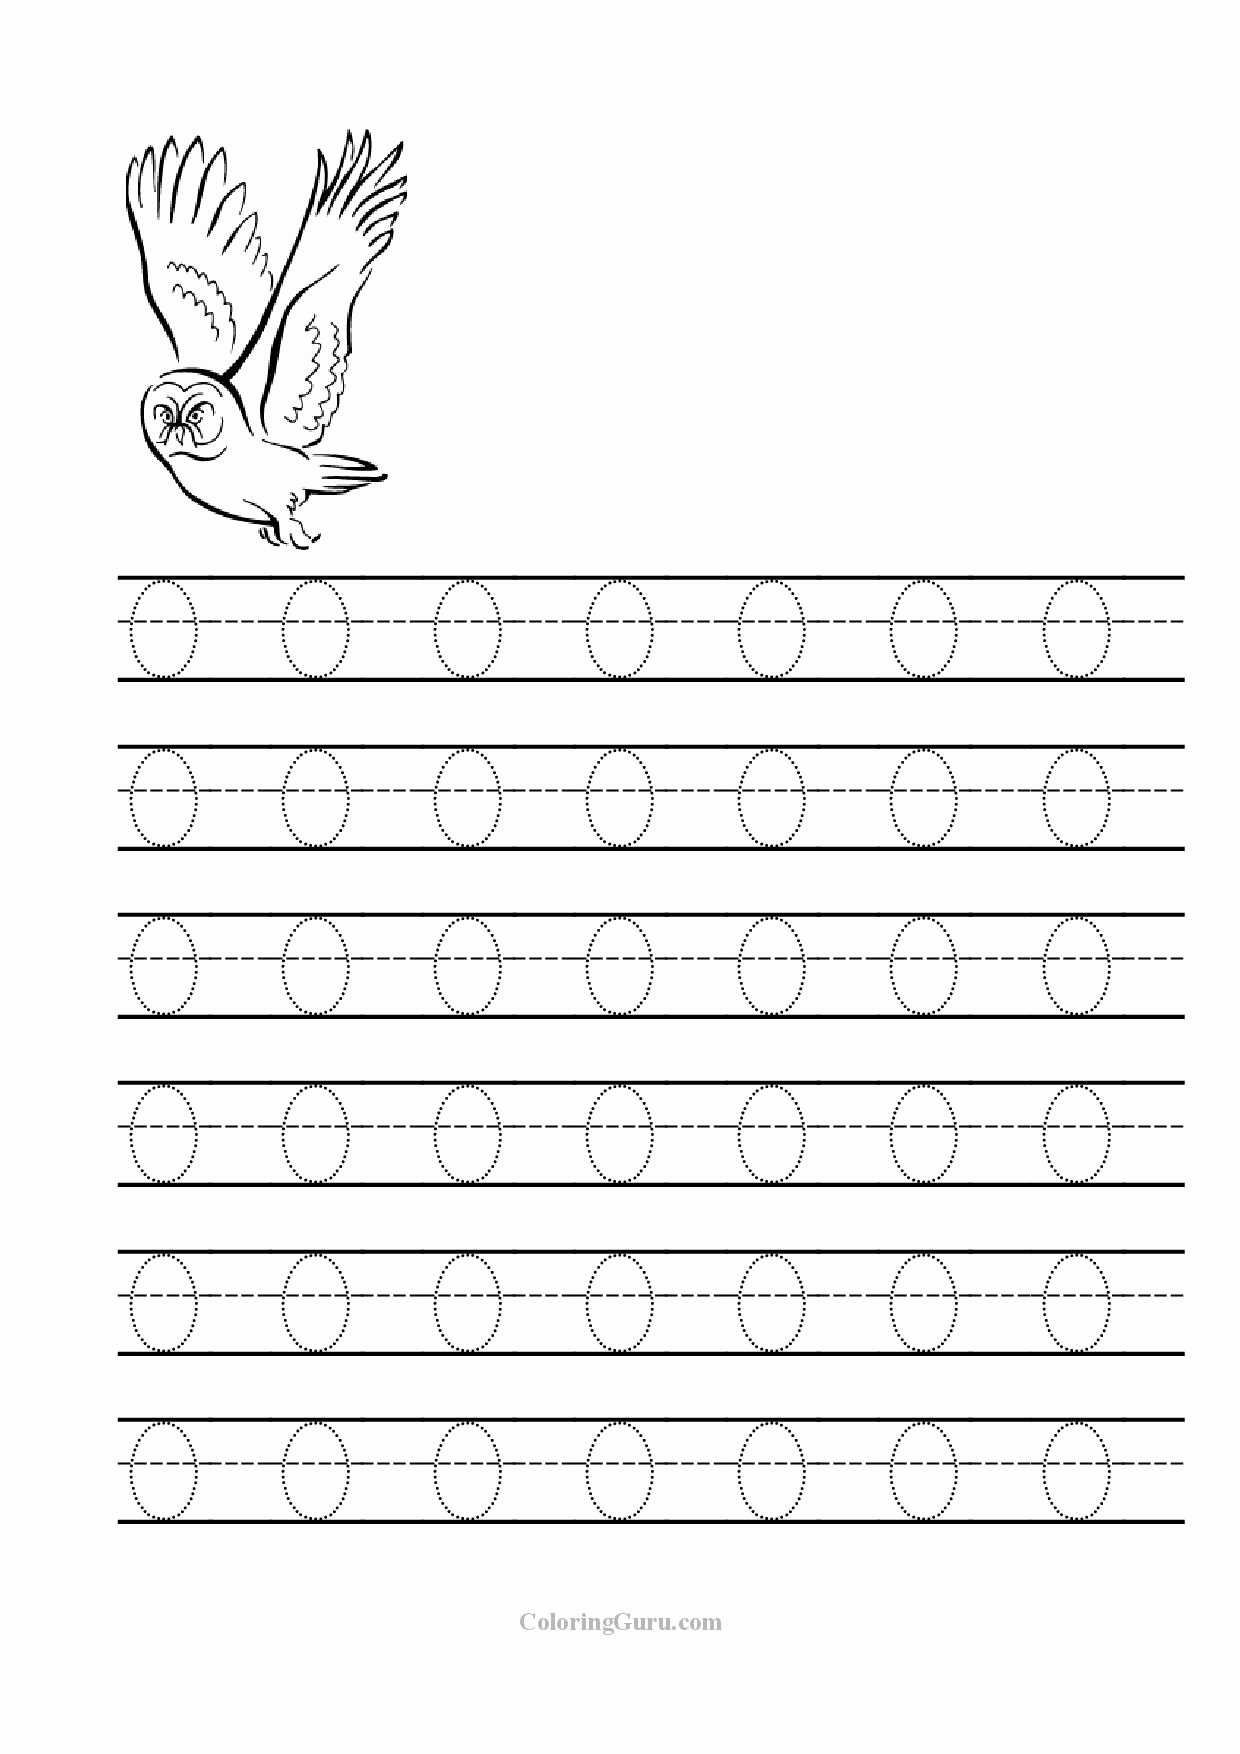 Letter O Worksheets for Preschoolers Fresh Letter O Worksheets for Educations Letter O Worksheets